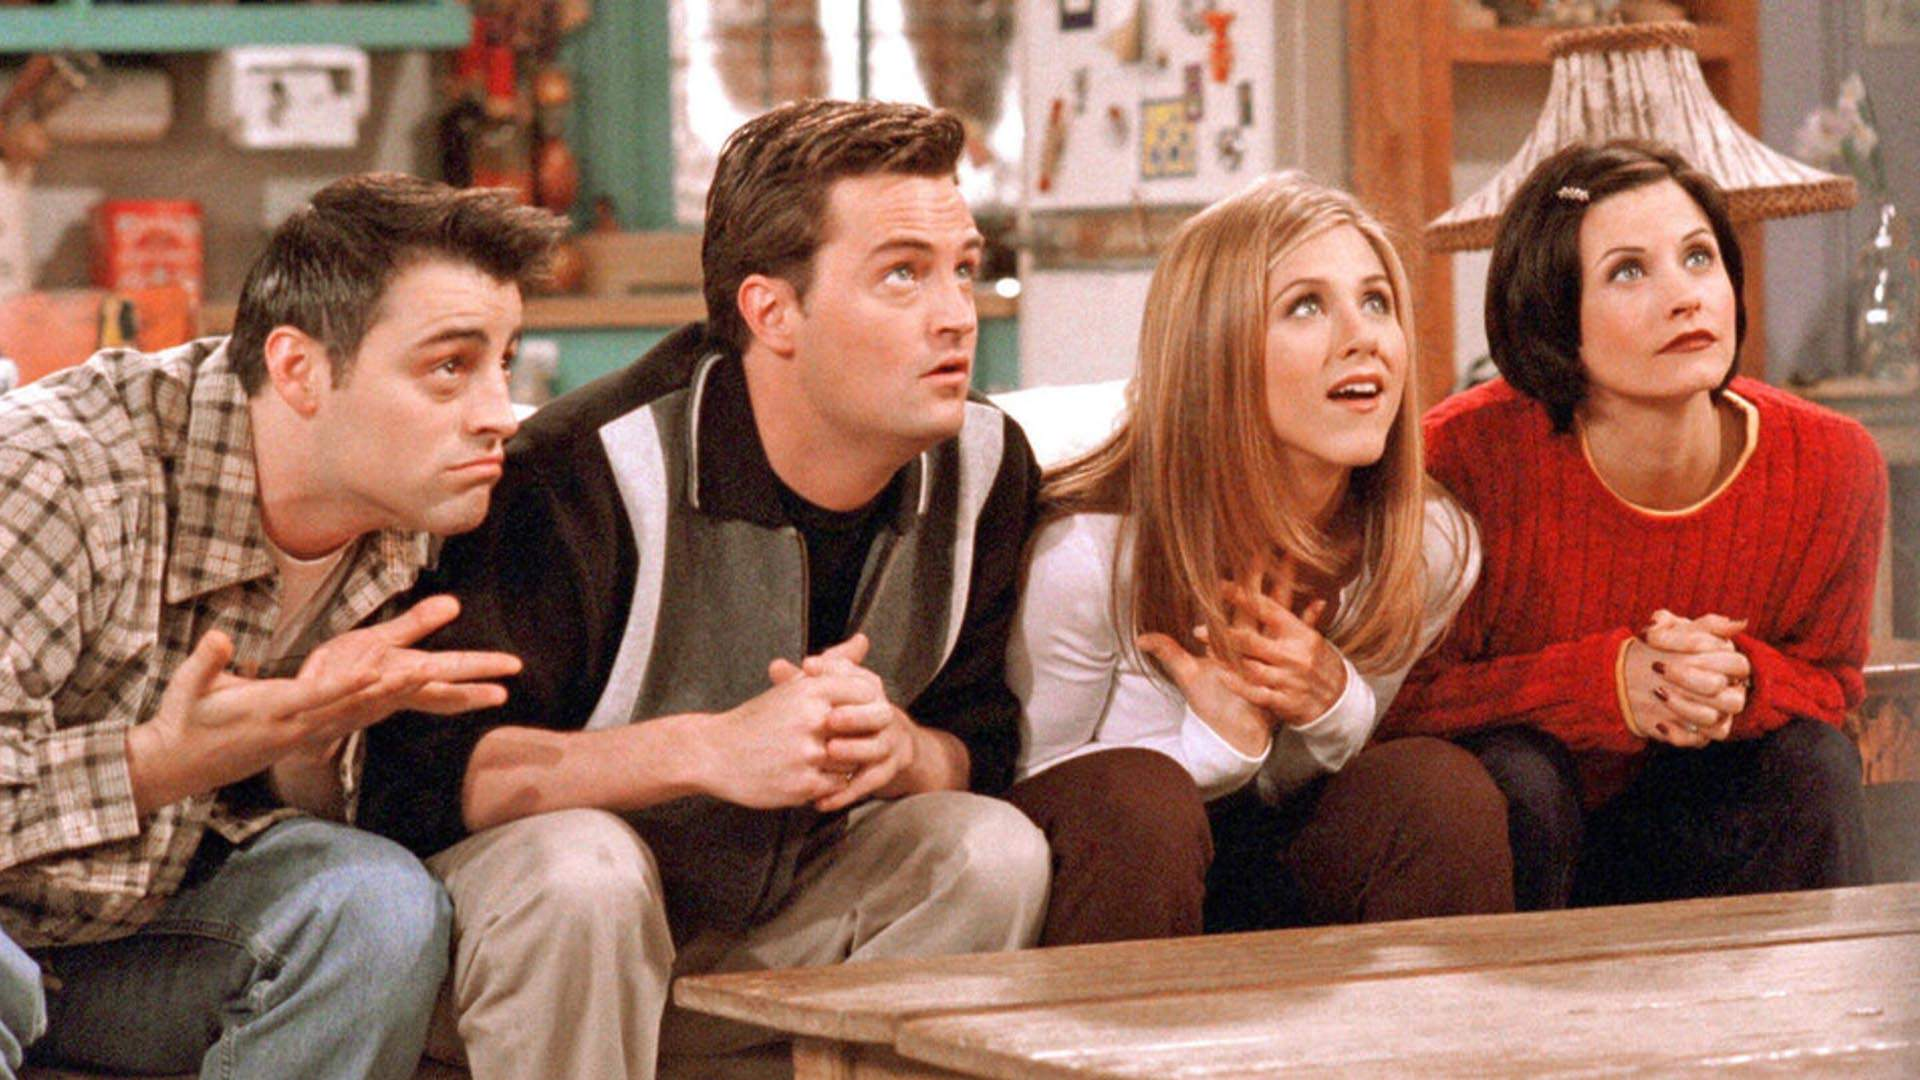 It Looks Like 'Friends' Could Be Heading Back to Your TV Screen for a Reunion Special